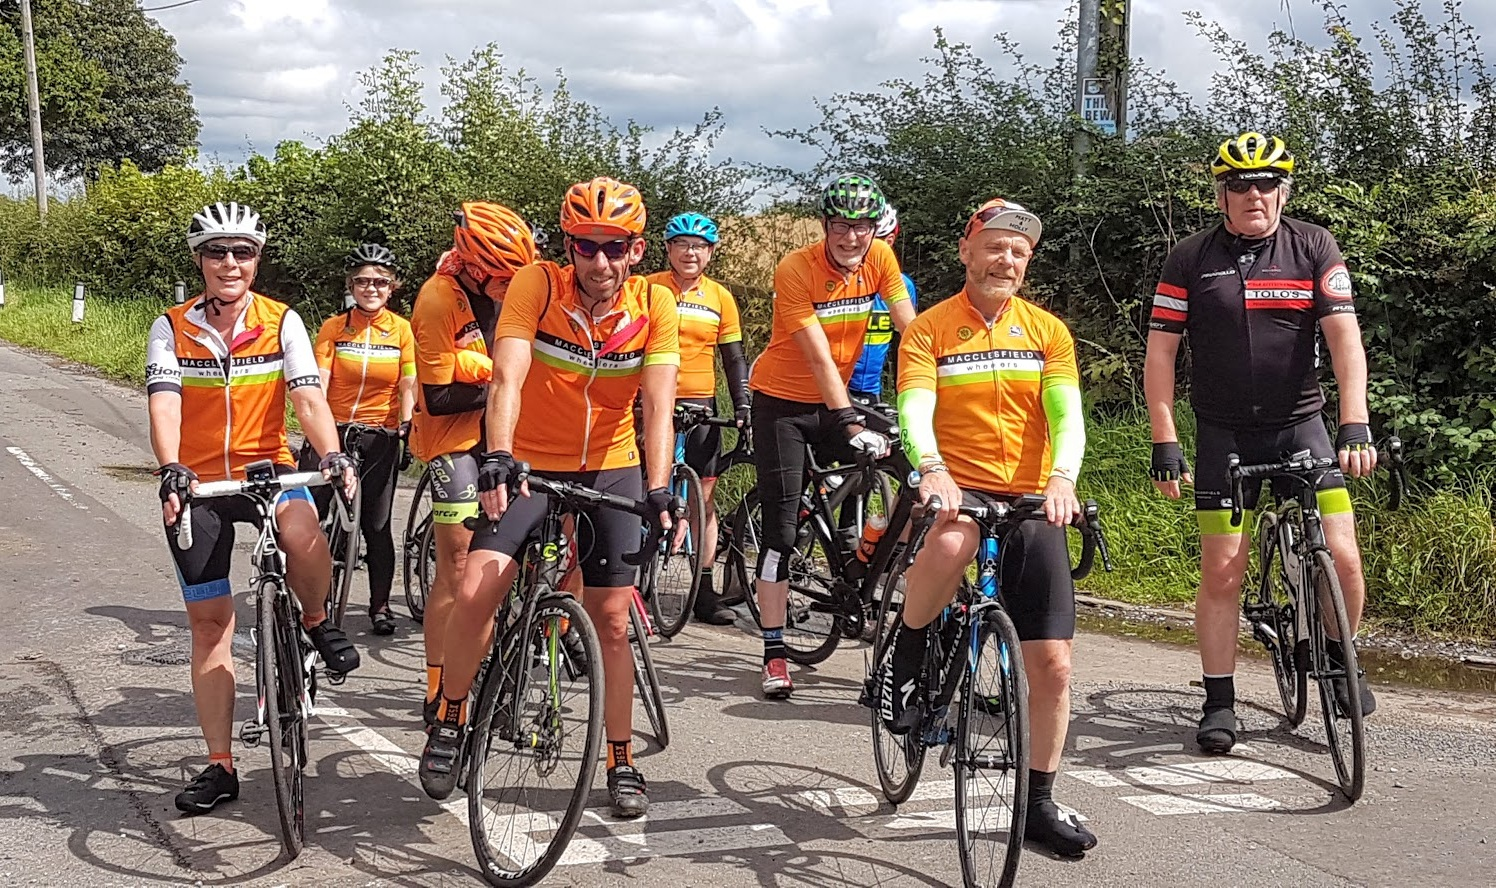 50-mile route pit stop at Rostherne Lane. Alison, Kirsten, Andy, Christian, Mark, David, Rob, Paul, Andrew. Thankfully off camera behind (separate) hedges: Bennet, Eddie.